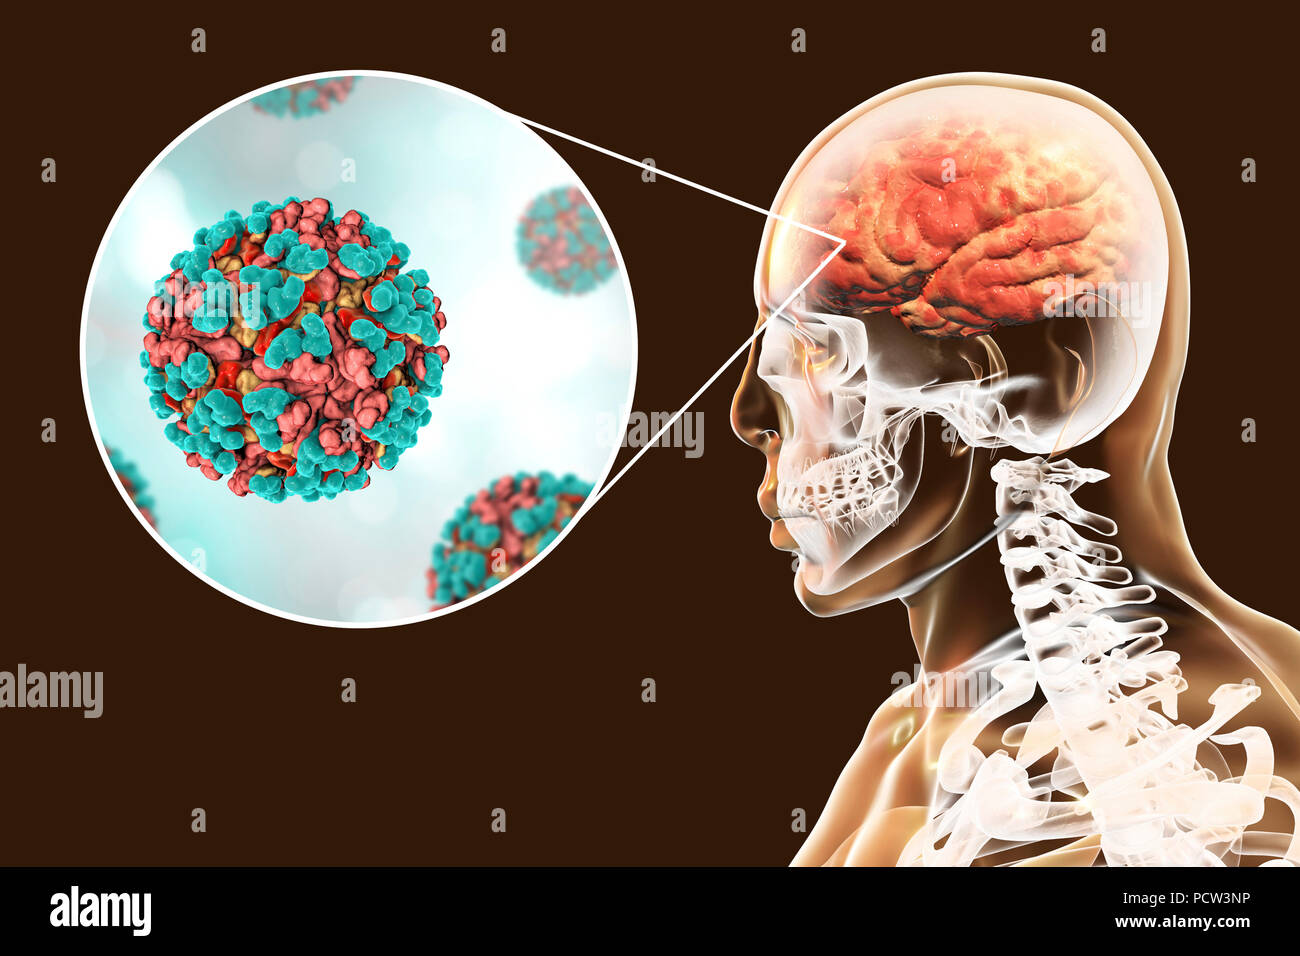 Venezuelan equine encephalitis viruses infecting human brain, computer illustration. This mosquito-borne virus can cause fatal brain and spinal cord inflammation in horses. It can also cause a fatal fever in humans. In viruses, the capsid is the protein shell that encloses the genetic material. A capsid consists of subunits called capsomeres that self-assemble to form the shell seen here. One of the functions of the capsid is to aid the transmission of the viral genetic material into host cells. - Stock Image